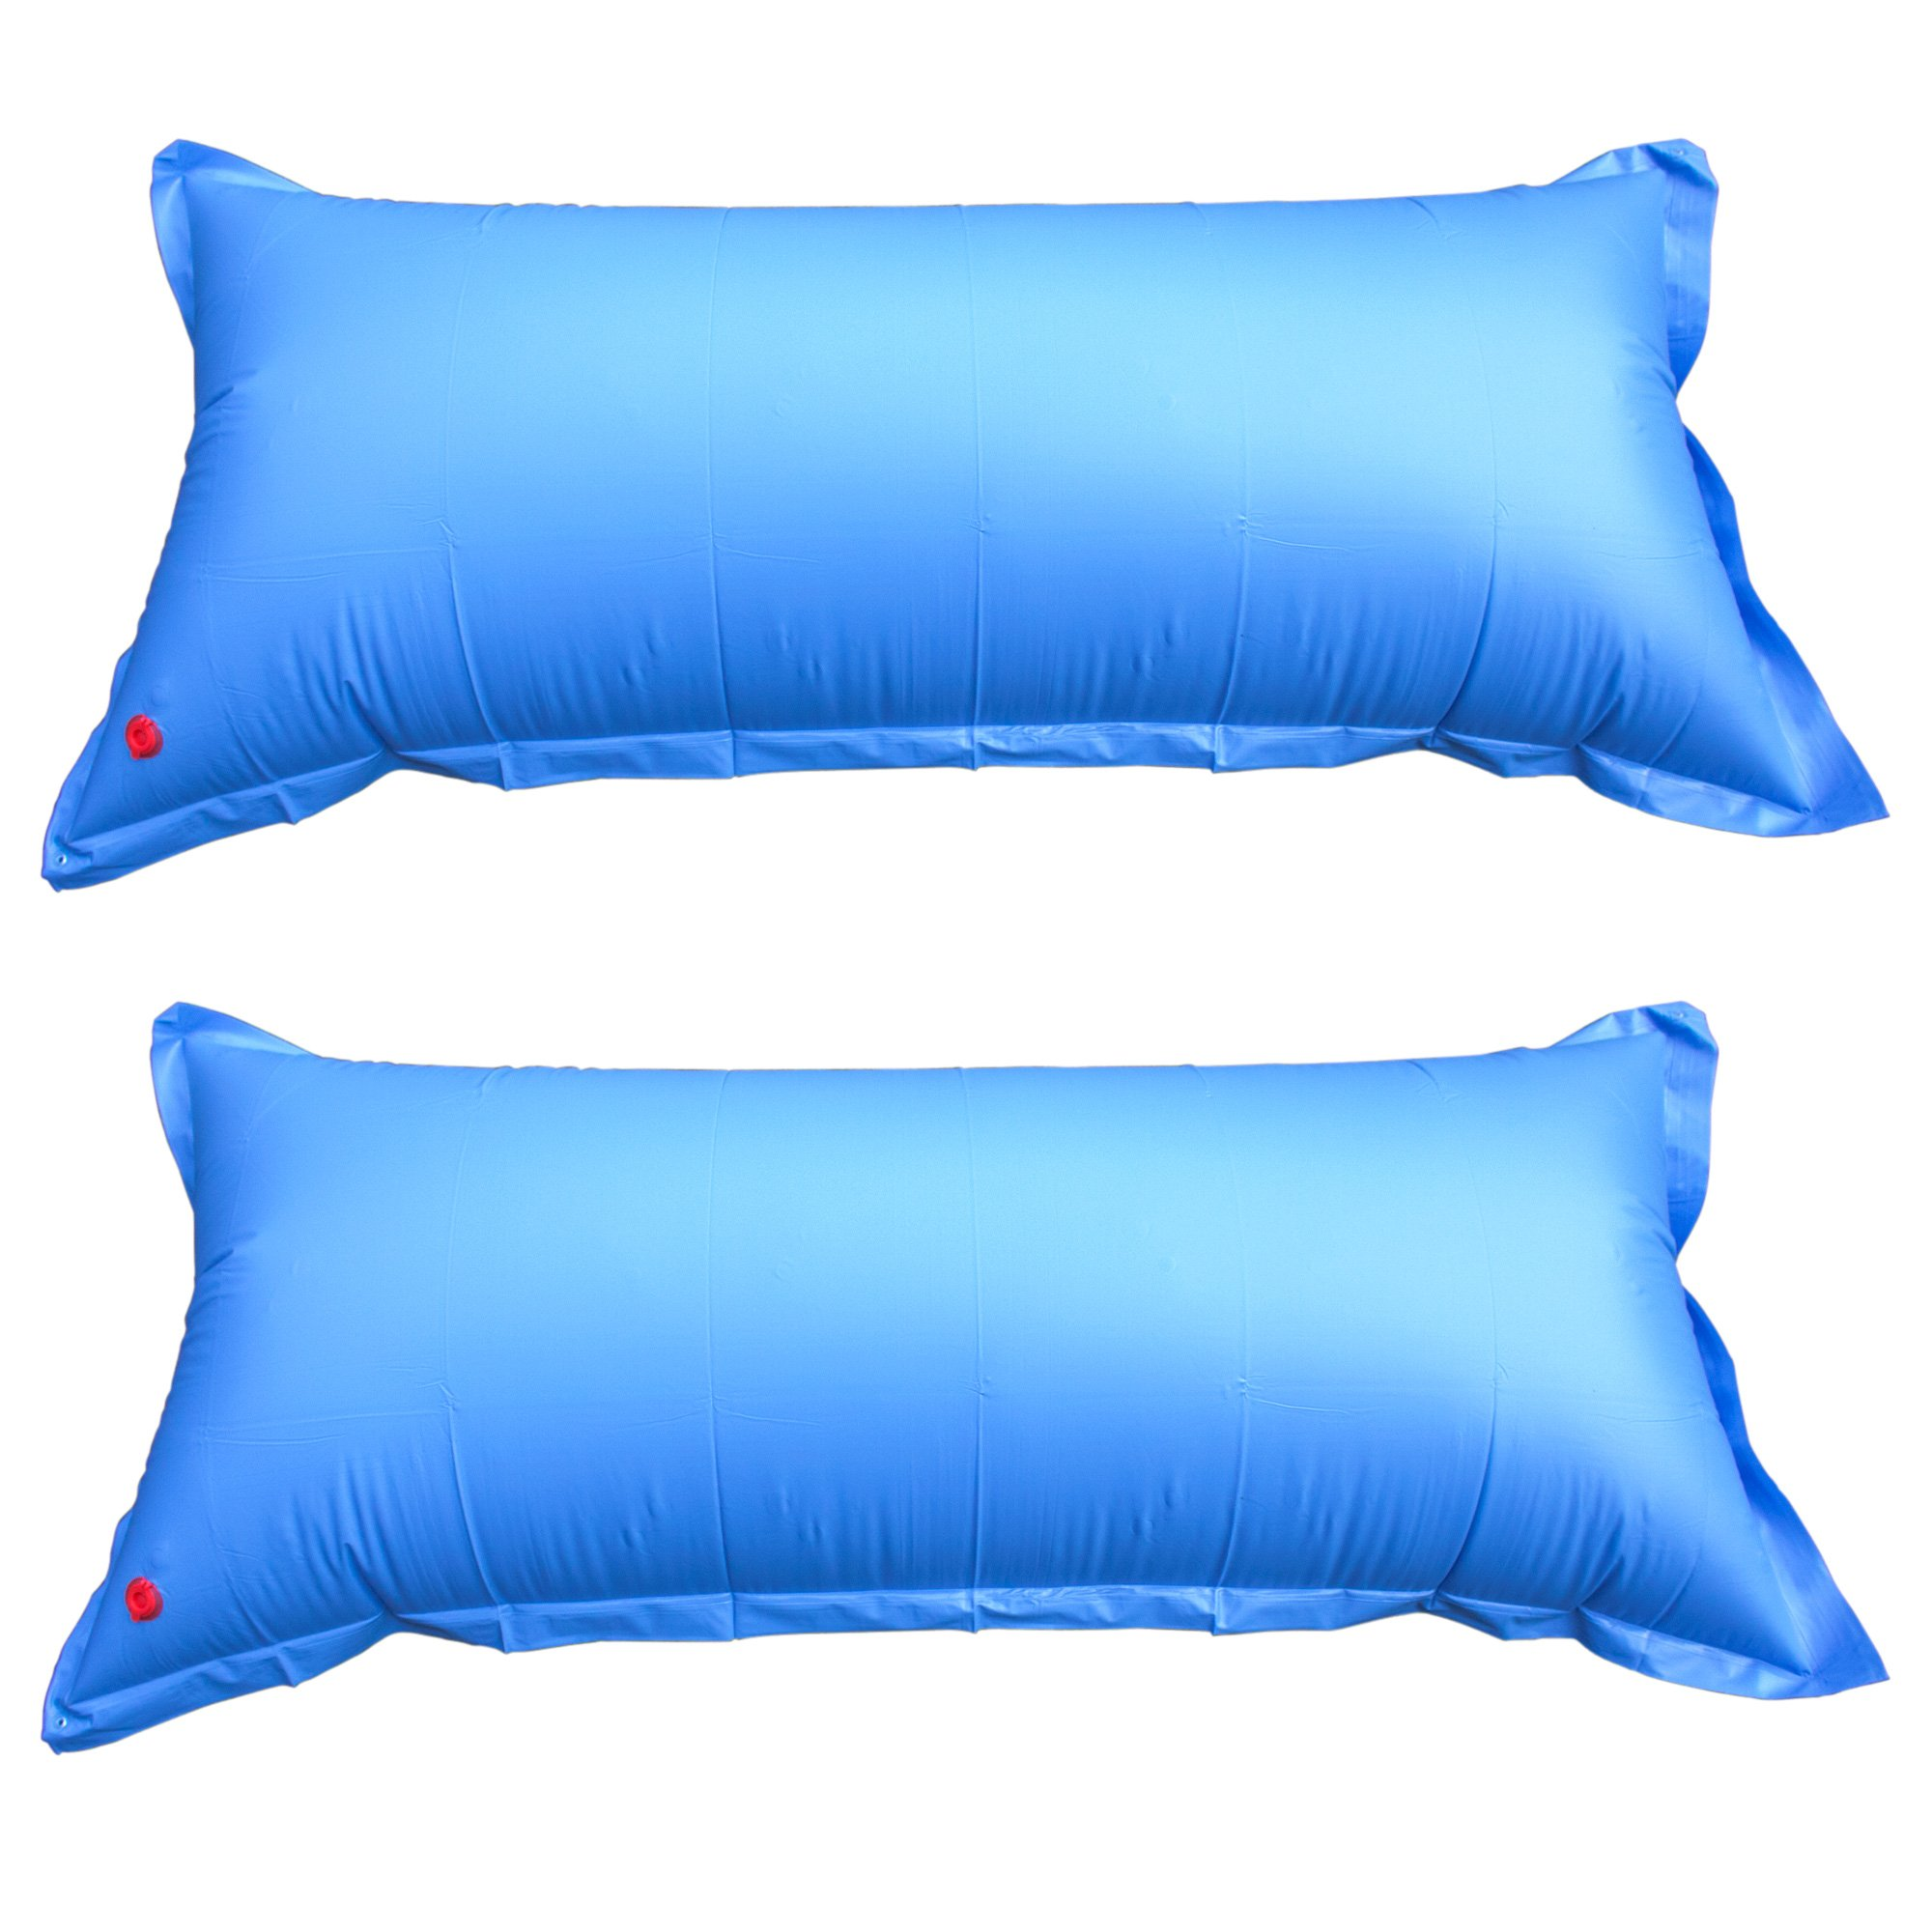 Robelle 3748-02 Deluxe 4-foot x 8-foot Ice Equalizer Air Pillow for Above Ground Winter Pool Covers, 2-Pack by Robelle